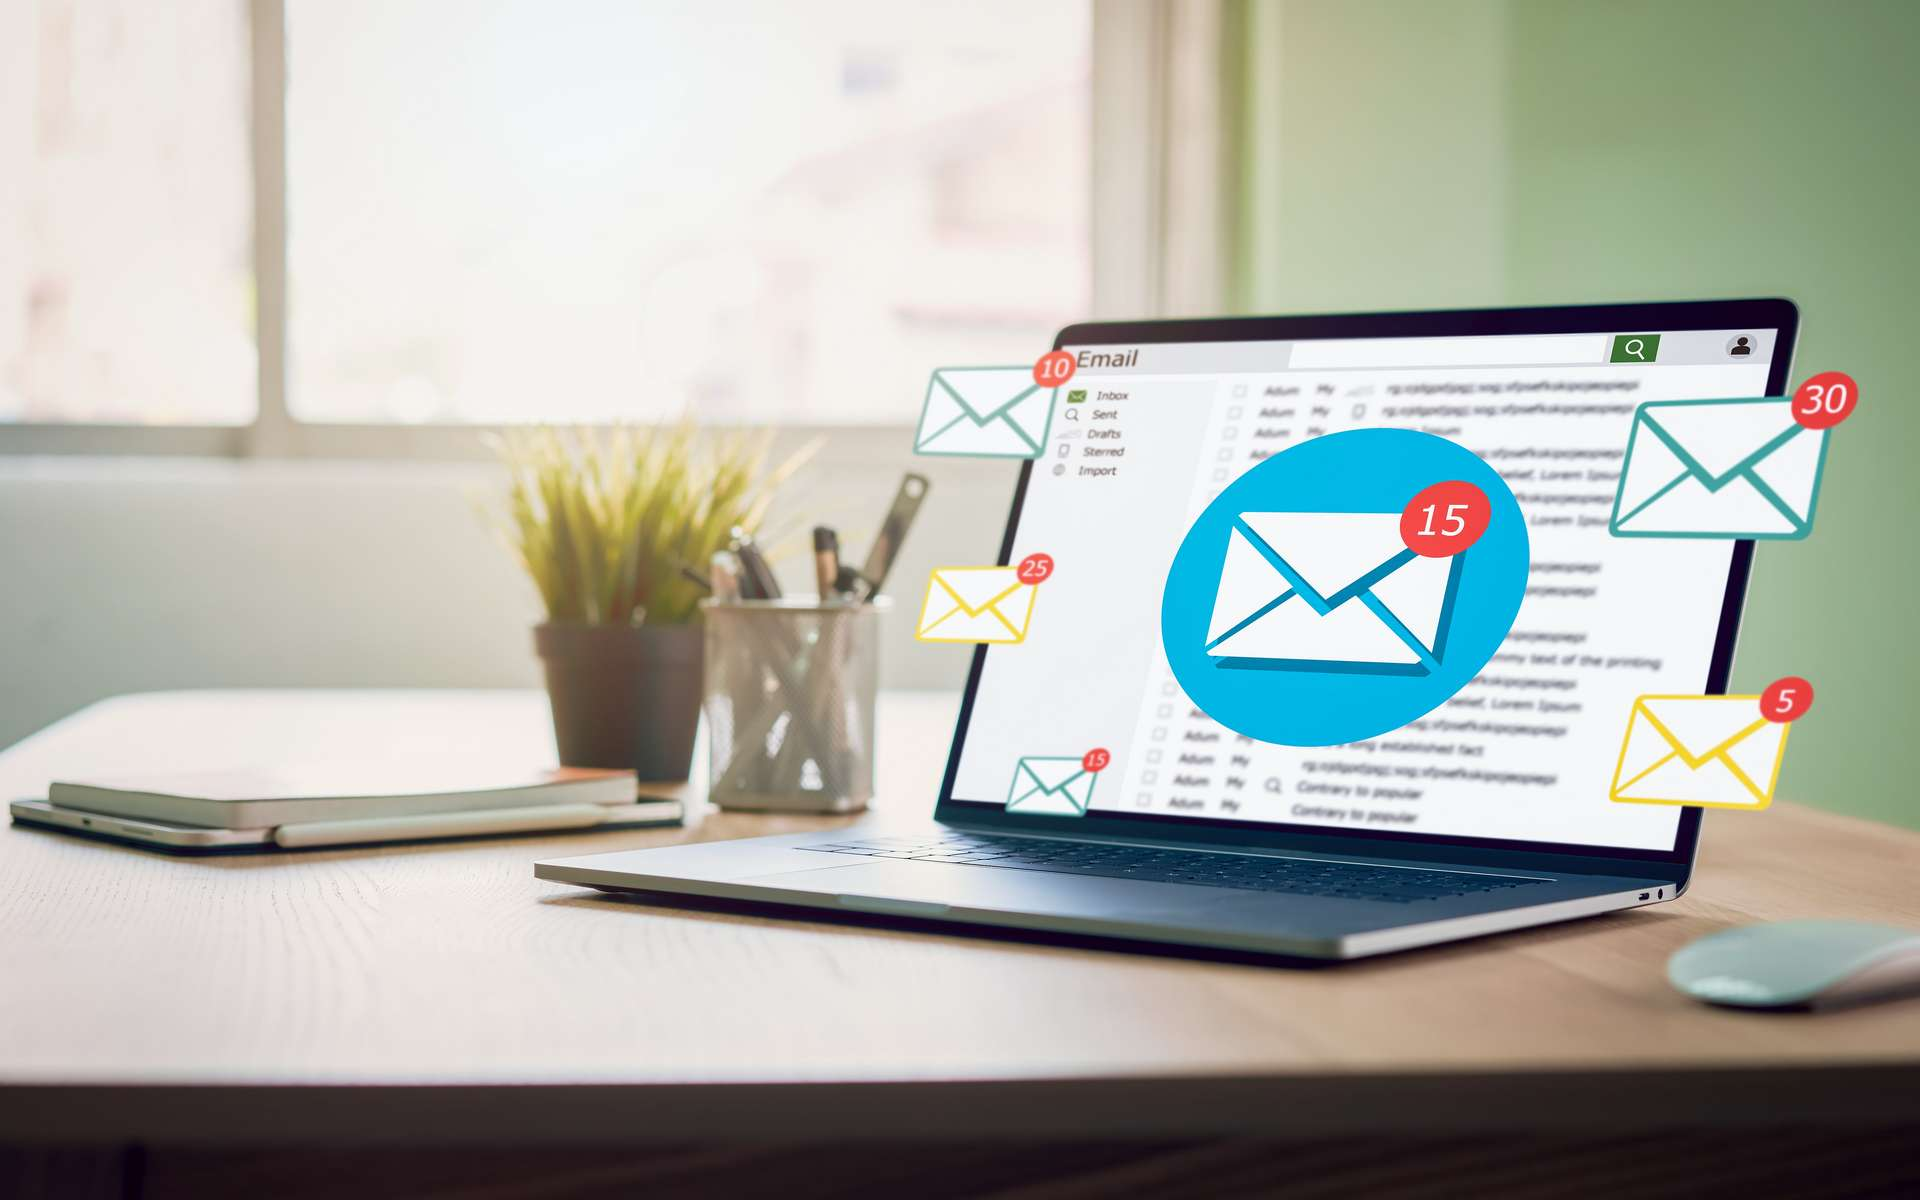 Bon plan formation Udemy : automatisez vos ventes avec l'email marketing © sitthiphong, Adobe Stock